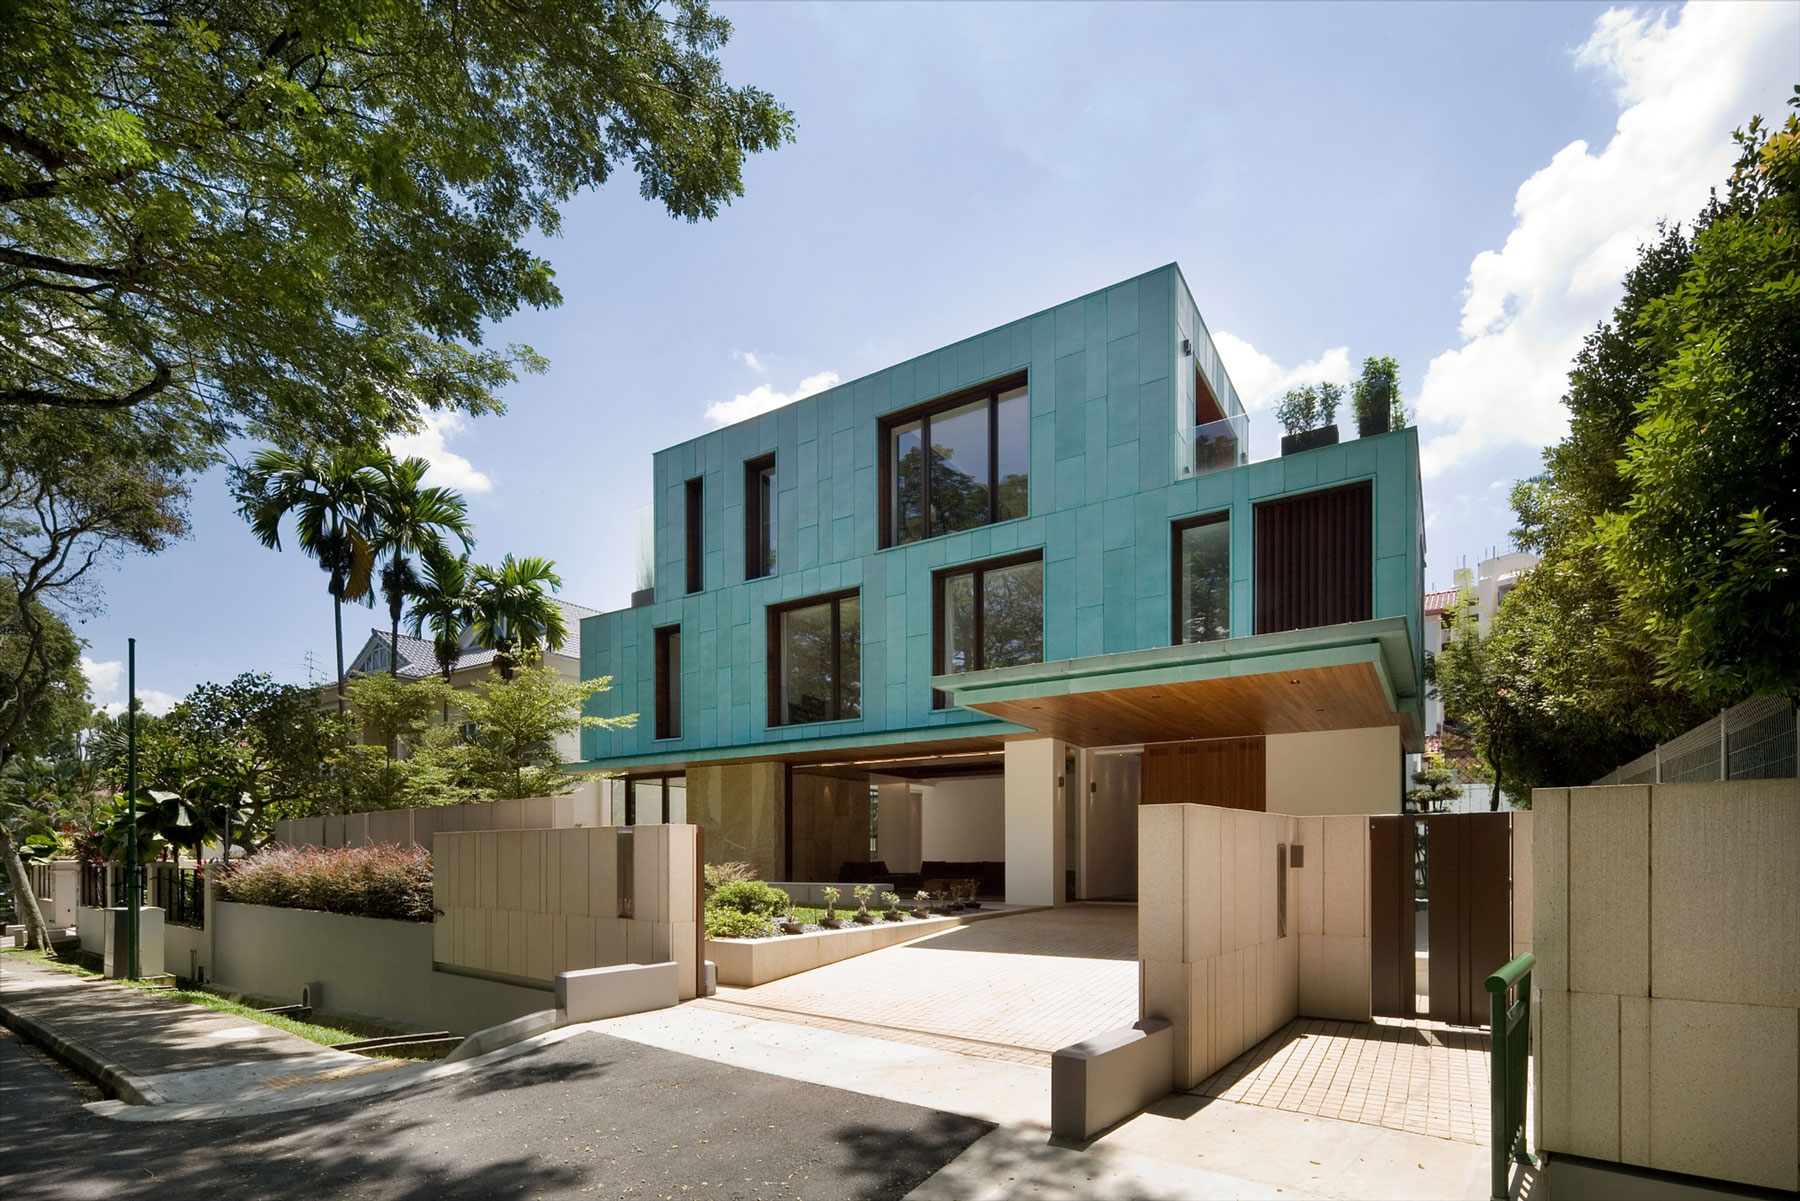 The Green House by K2LD Architects